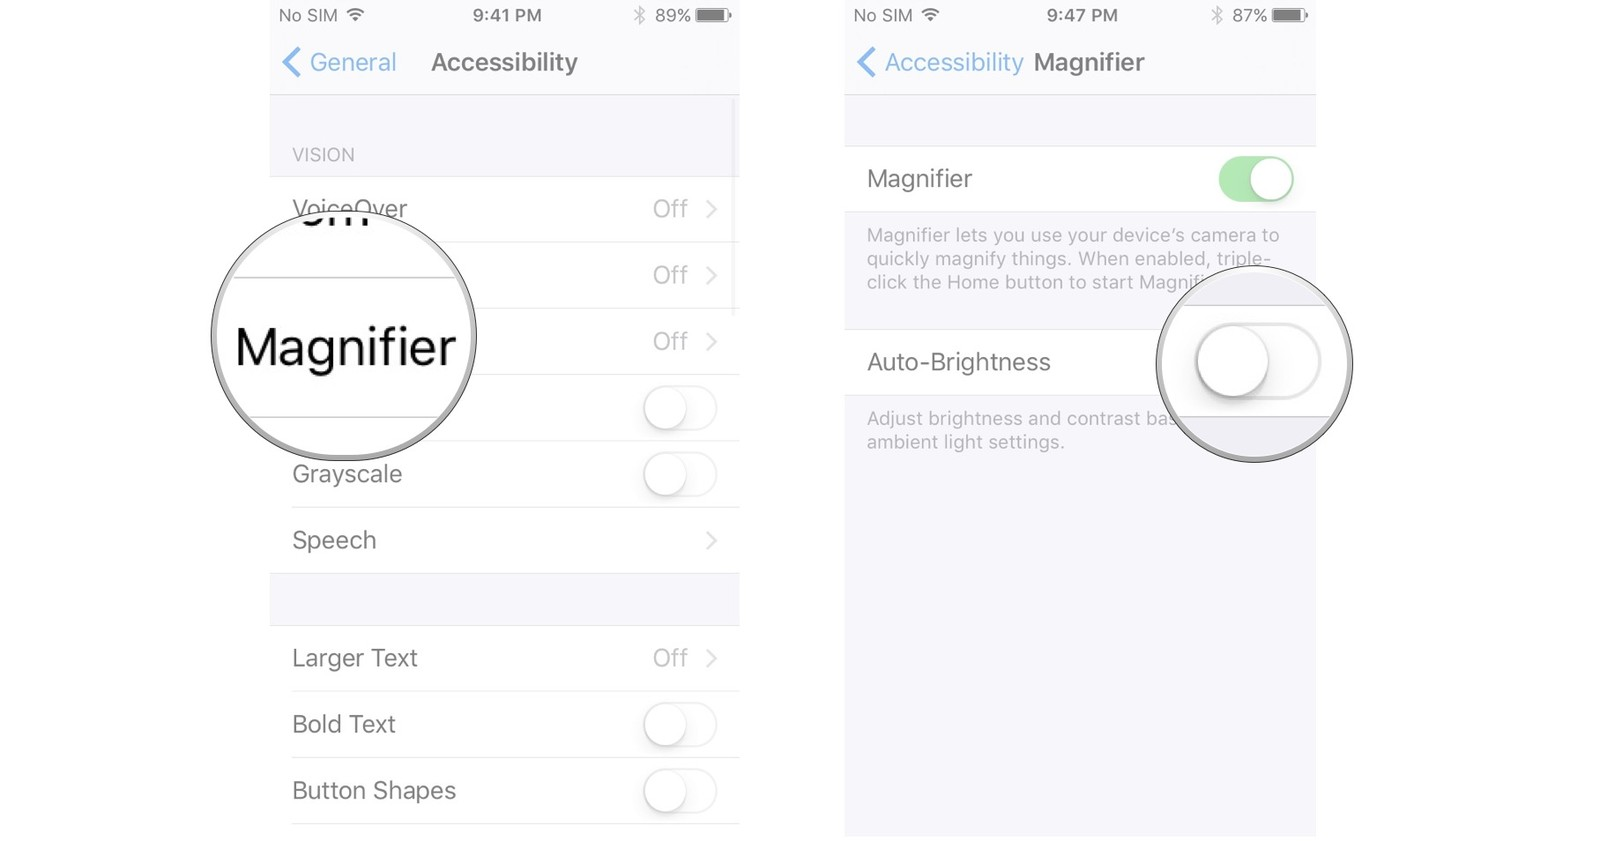 accessibility-ios10-magnifier-enablge-auto-brightness-screens-04